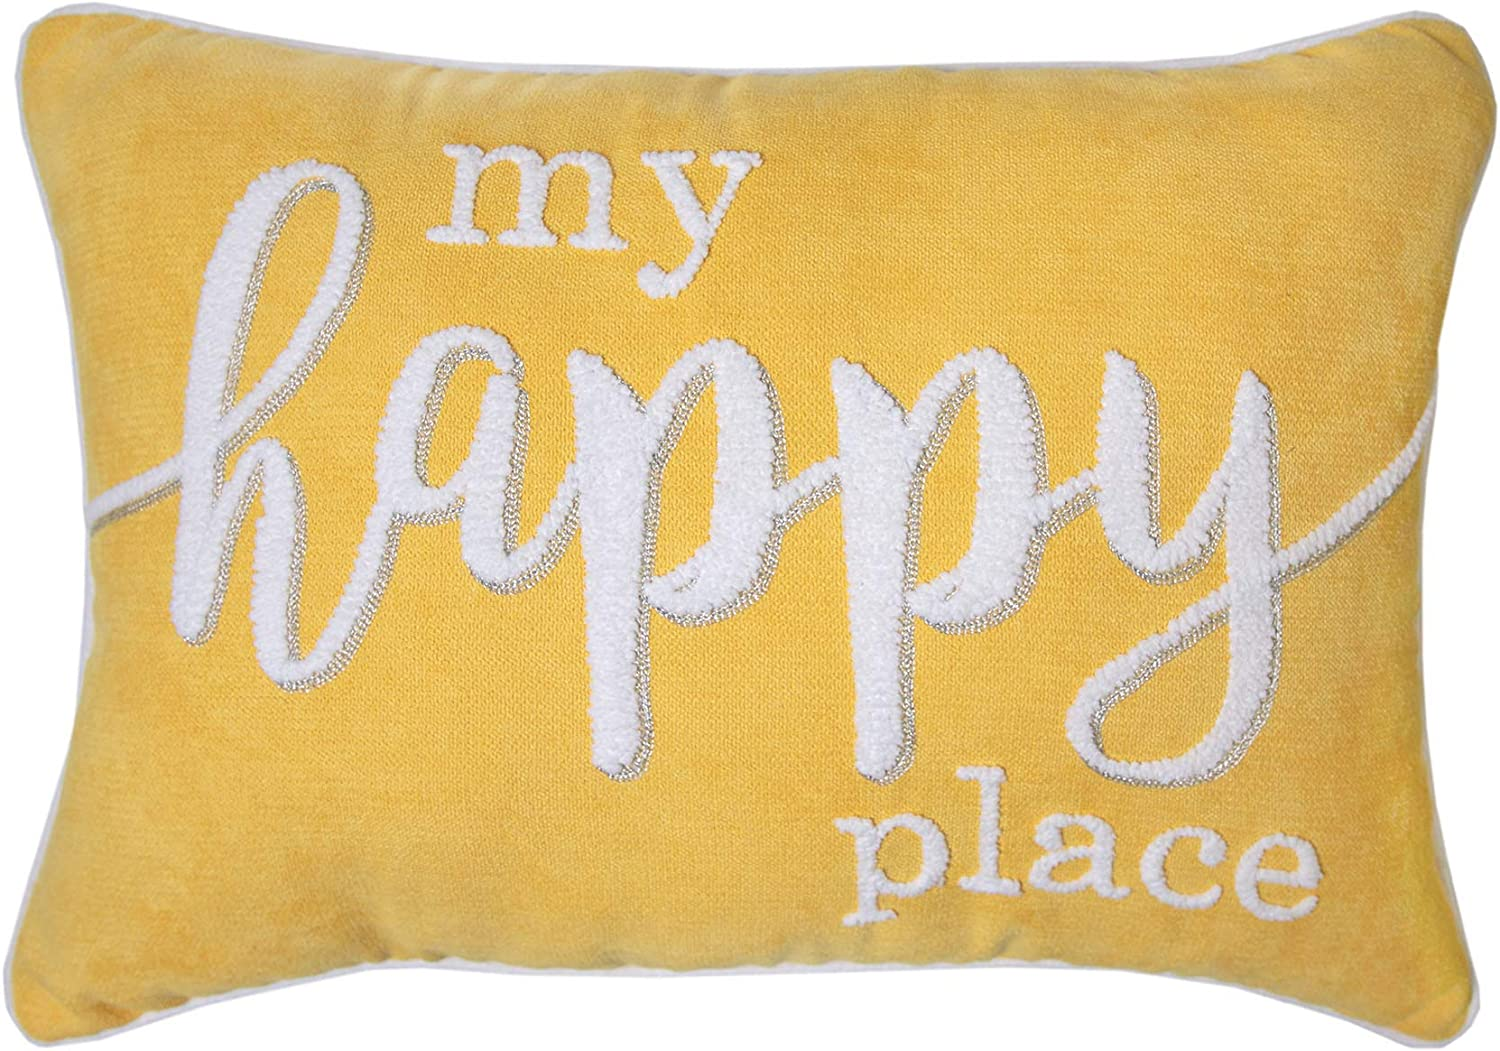 Amazon Com Bright And Beautiful My Happy Place Embroidered Decorative Pillow 14 X 20 Yellow White Pillow Home Kitchen